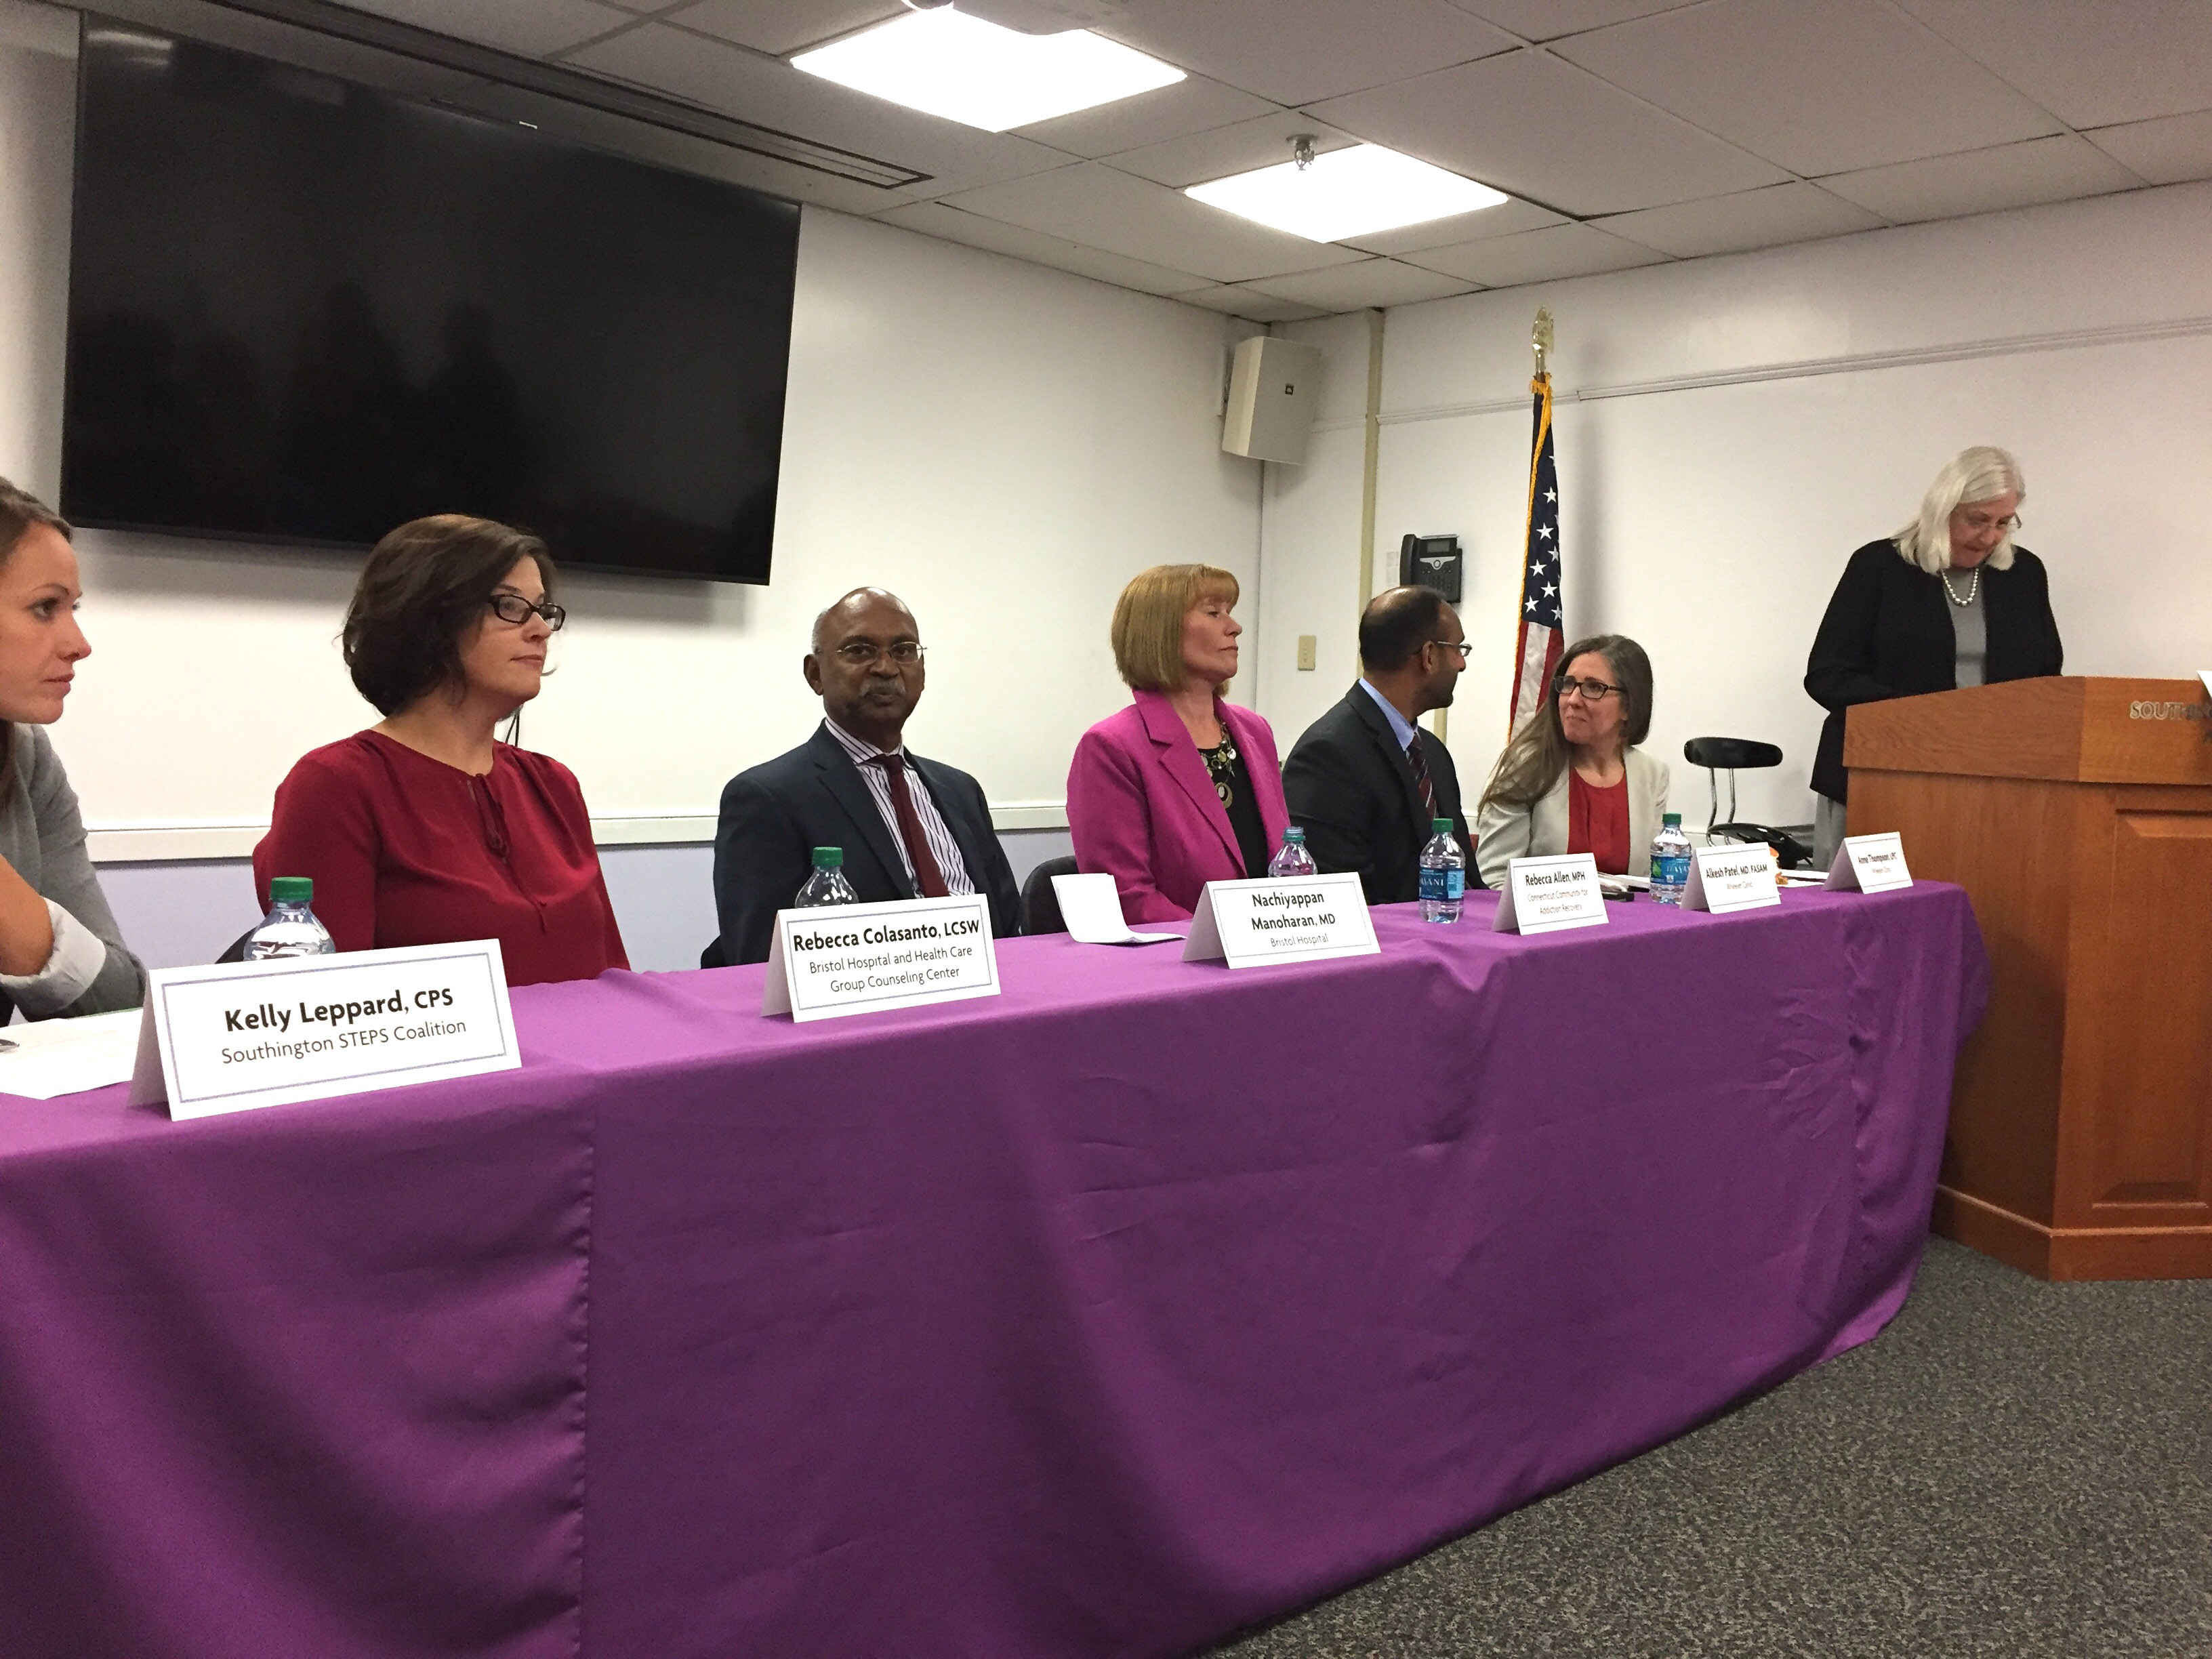 A panel discussed addiction at Southington library, Wednesday, Oct. 26. | Ashley Kus, The Plainville Citizen